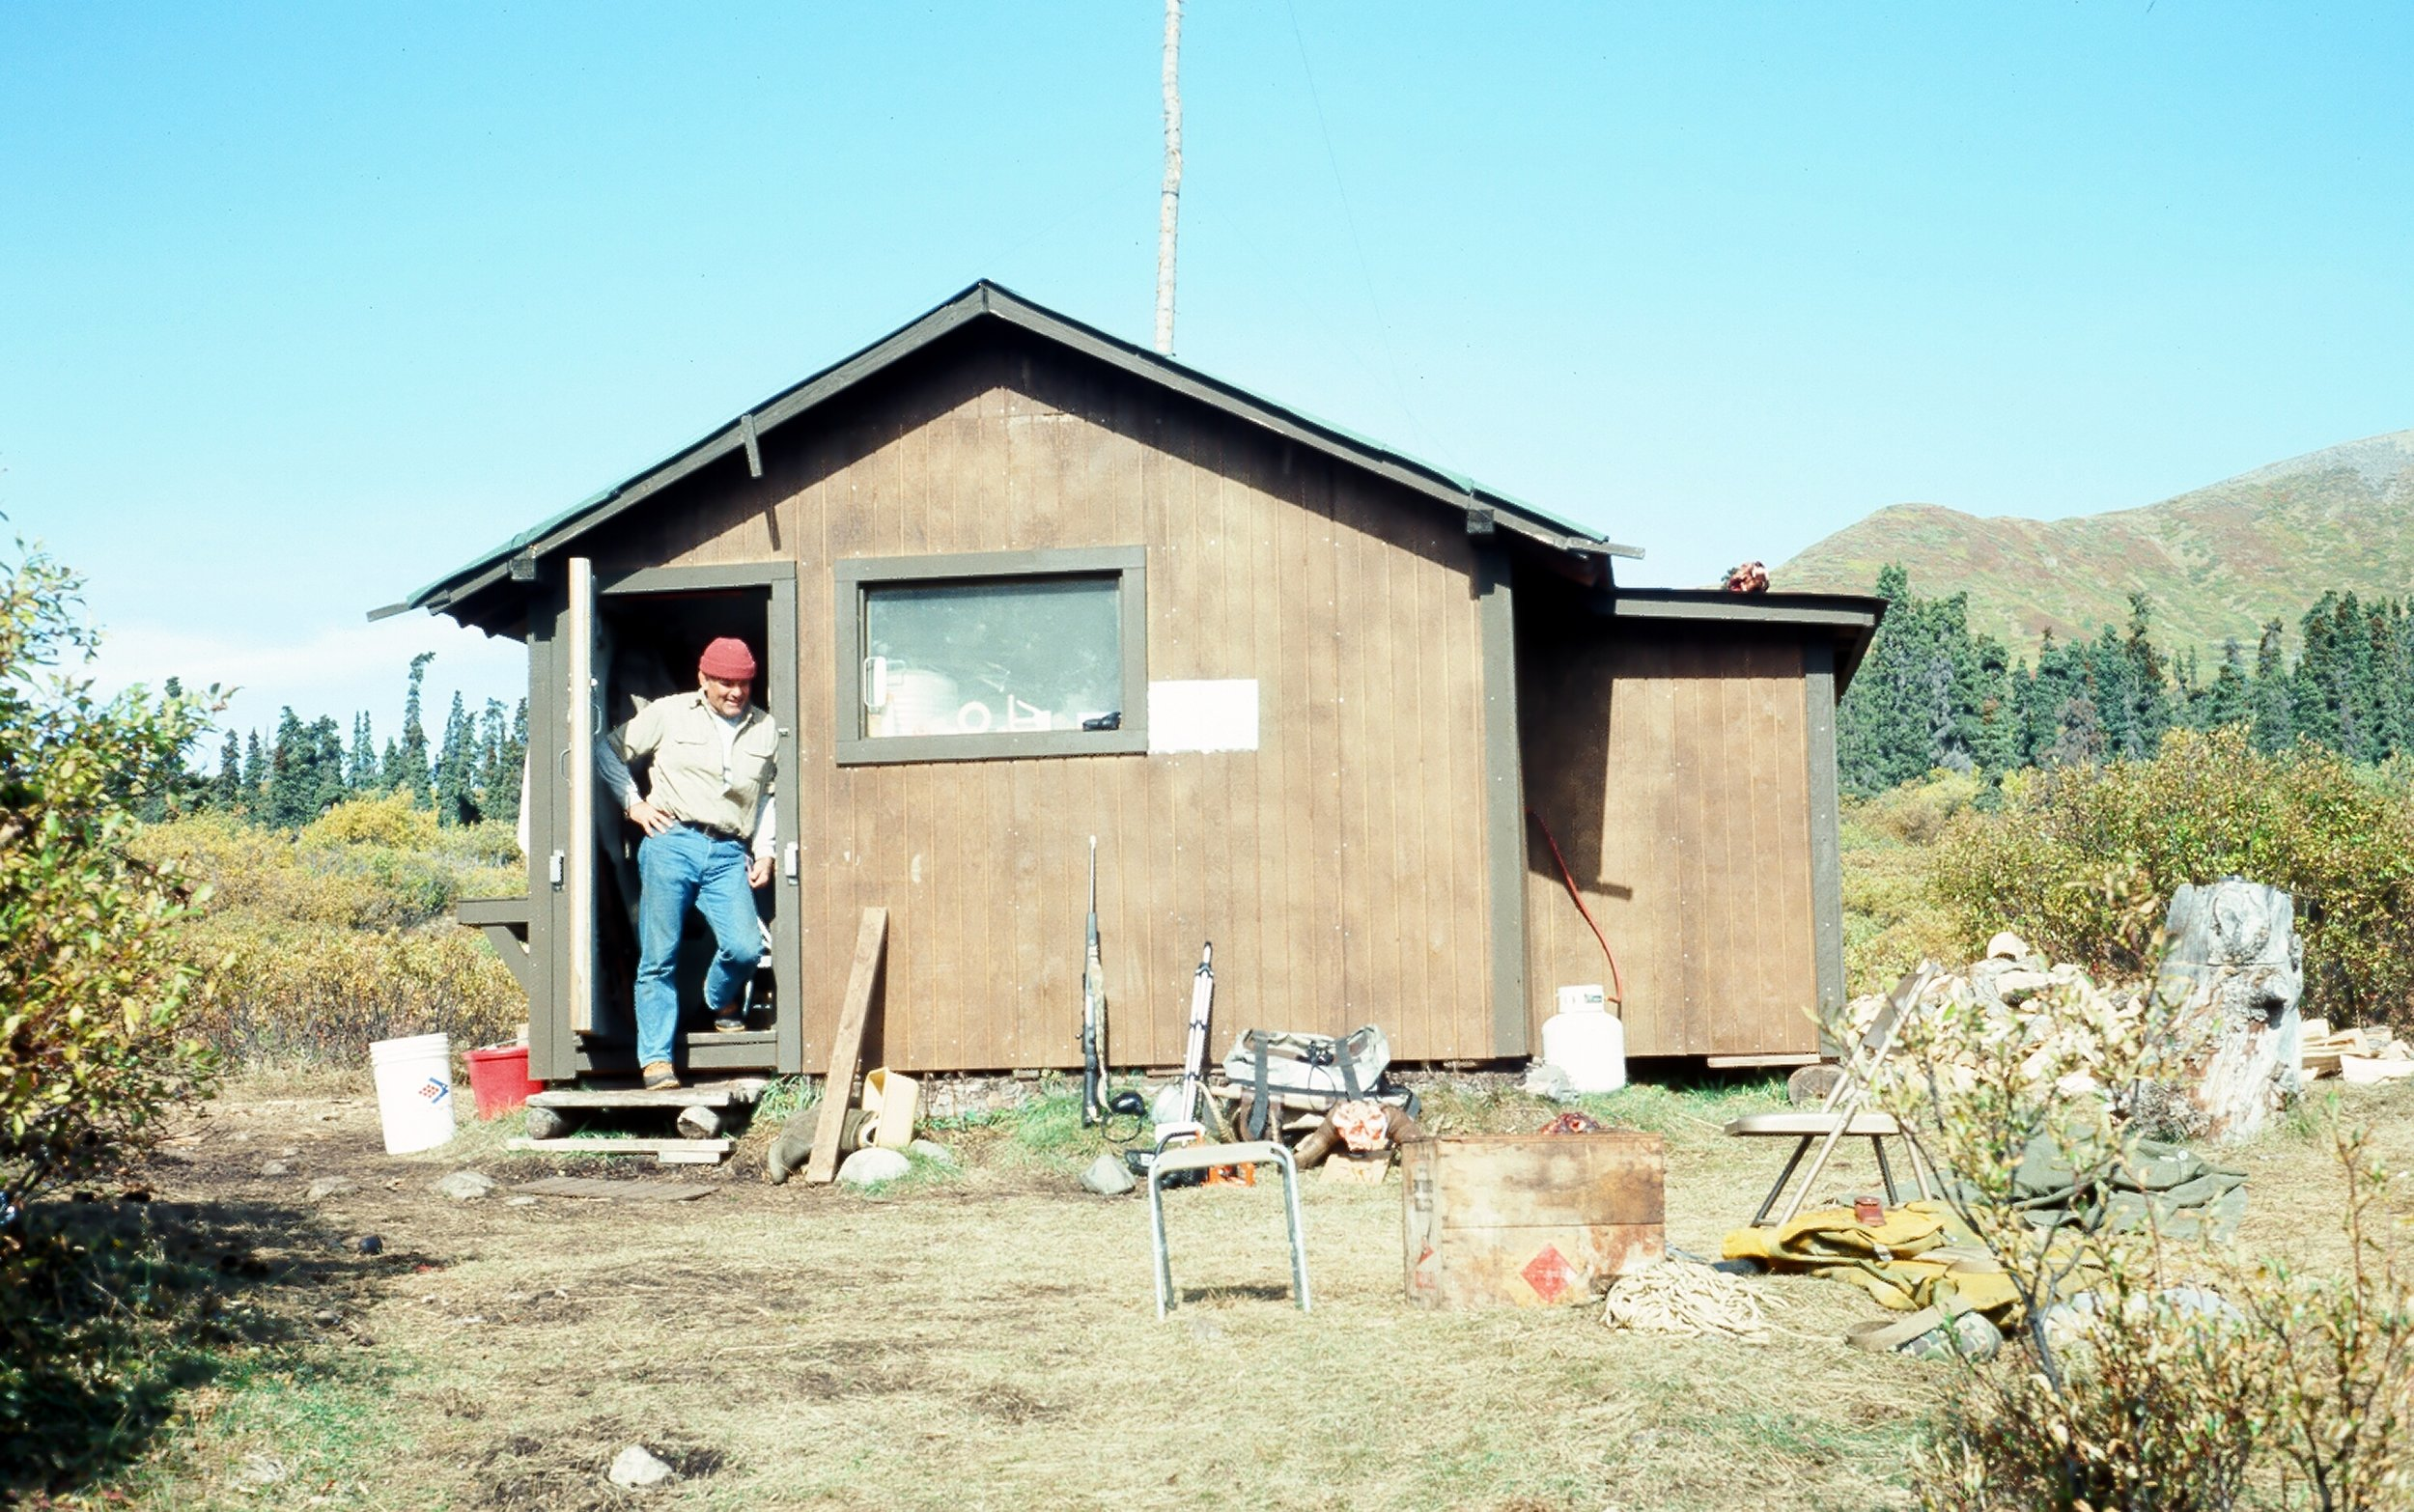 George Snyder in the doorway of our Big Bend Lakes Cabin.